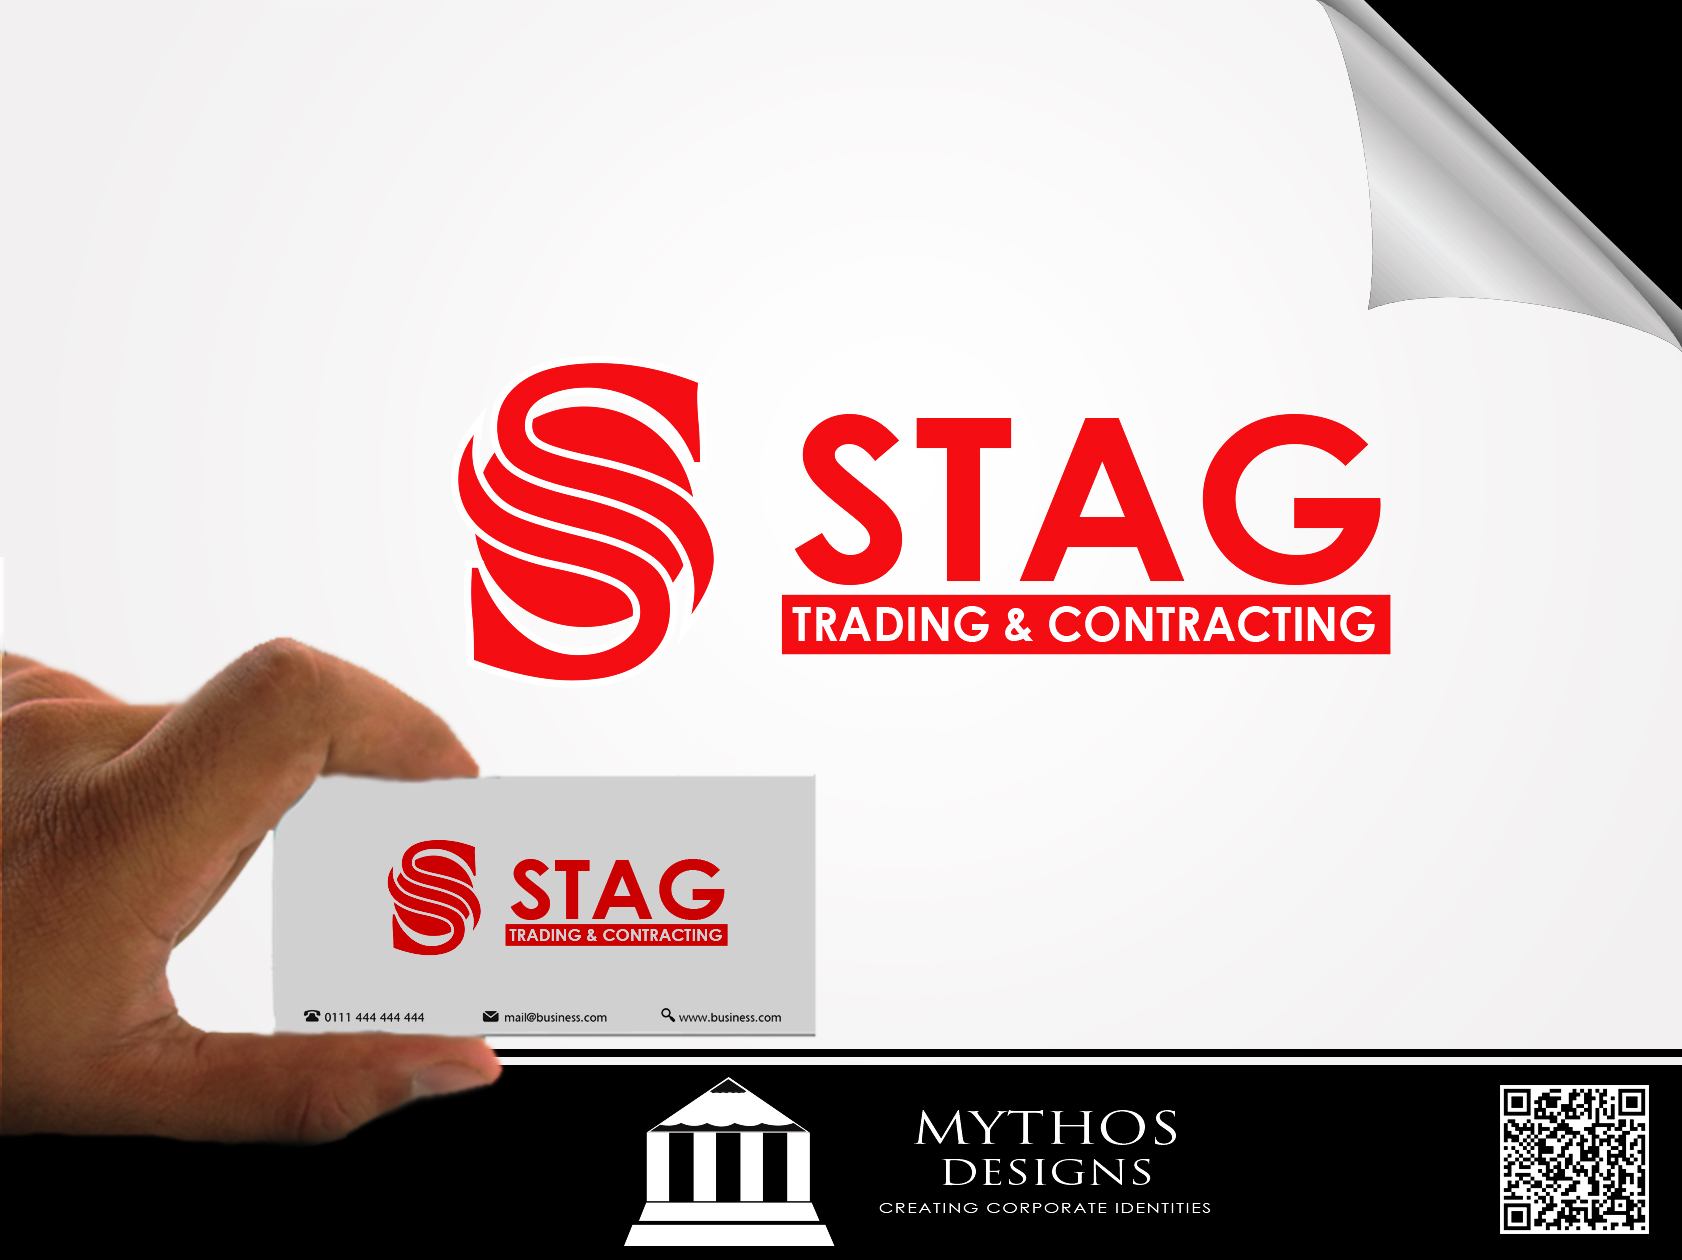 Logo Design by Mythos Designs - Entry No. 318 in the Logo Design Contest Captivating Logo Design for STAG Trading & Contracting.